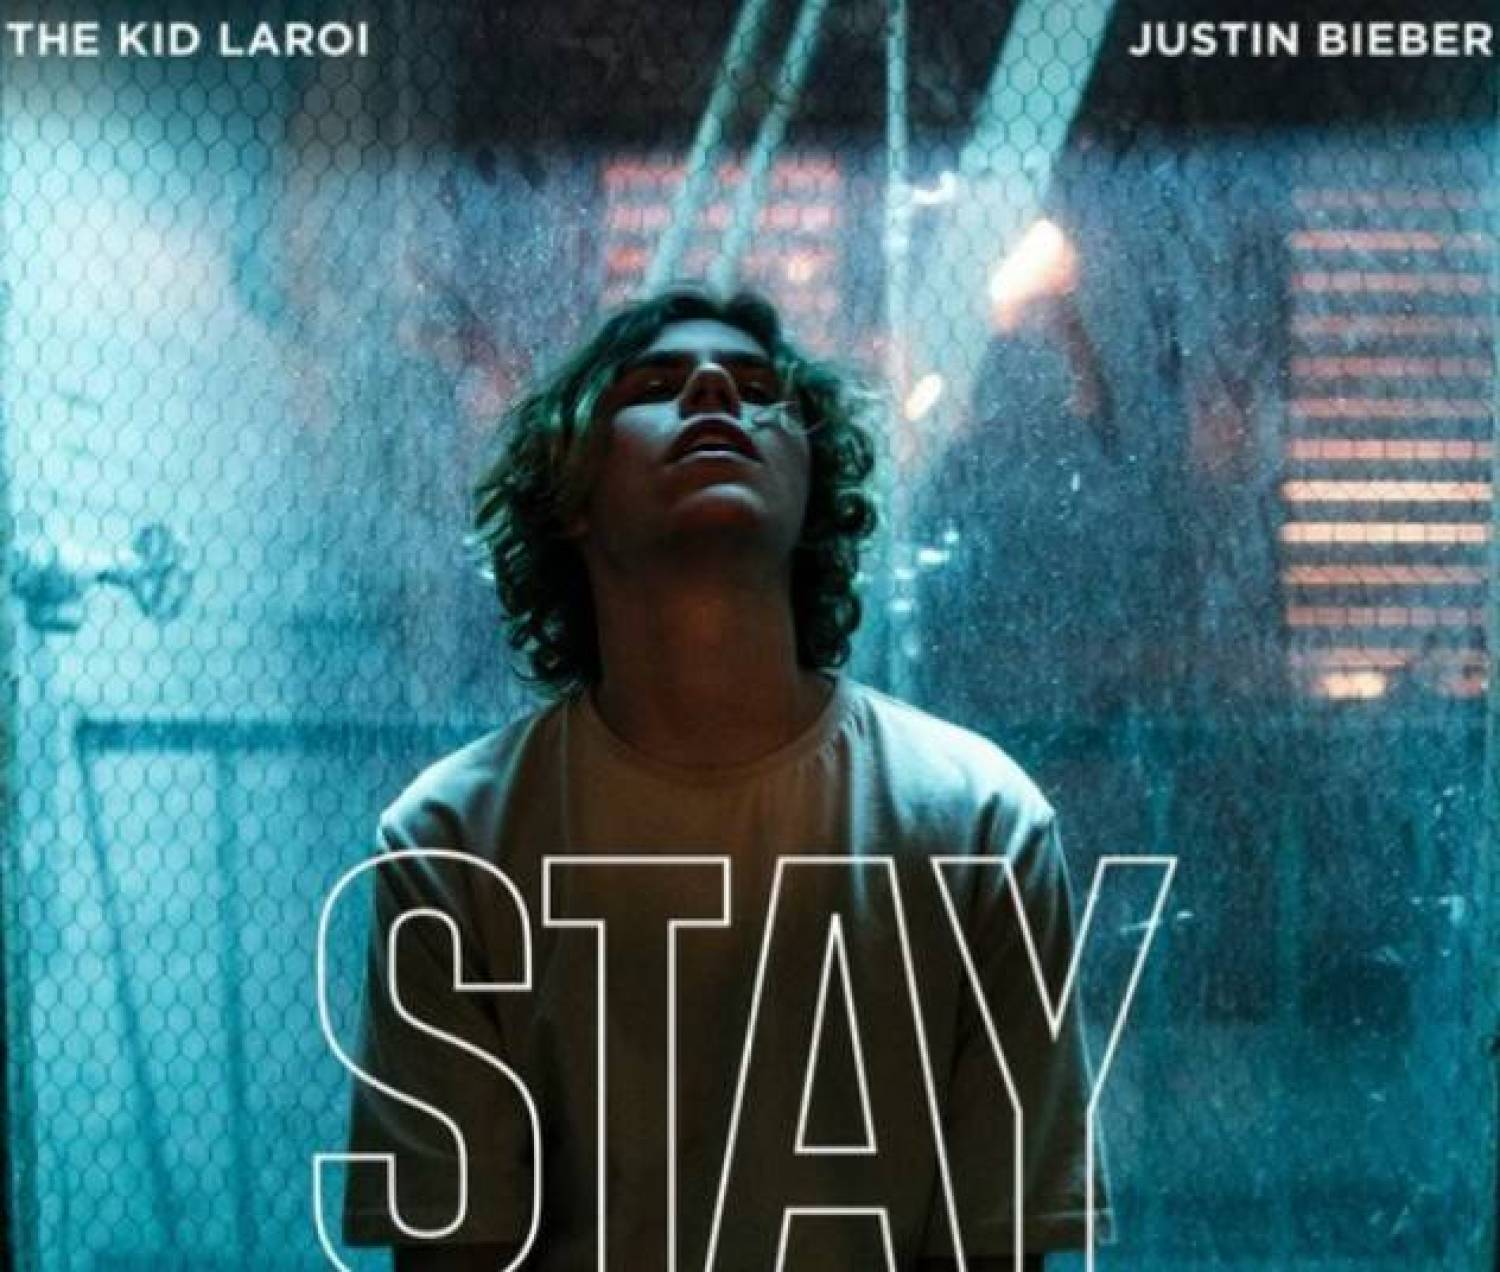 DOWNLOAD VIDEO: The Kid LAROI ft. Justin Bieber – Stay MP4